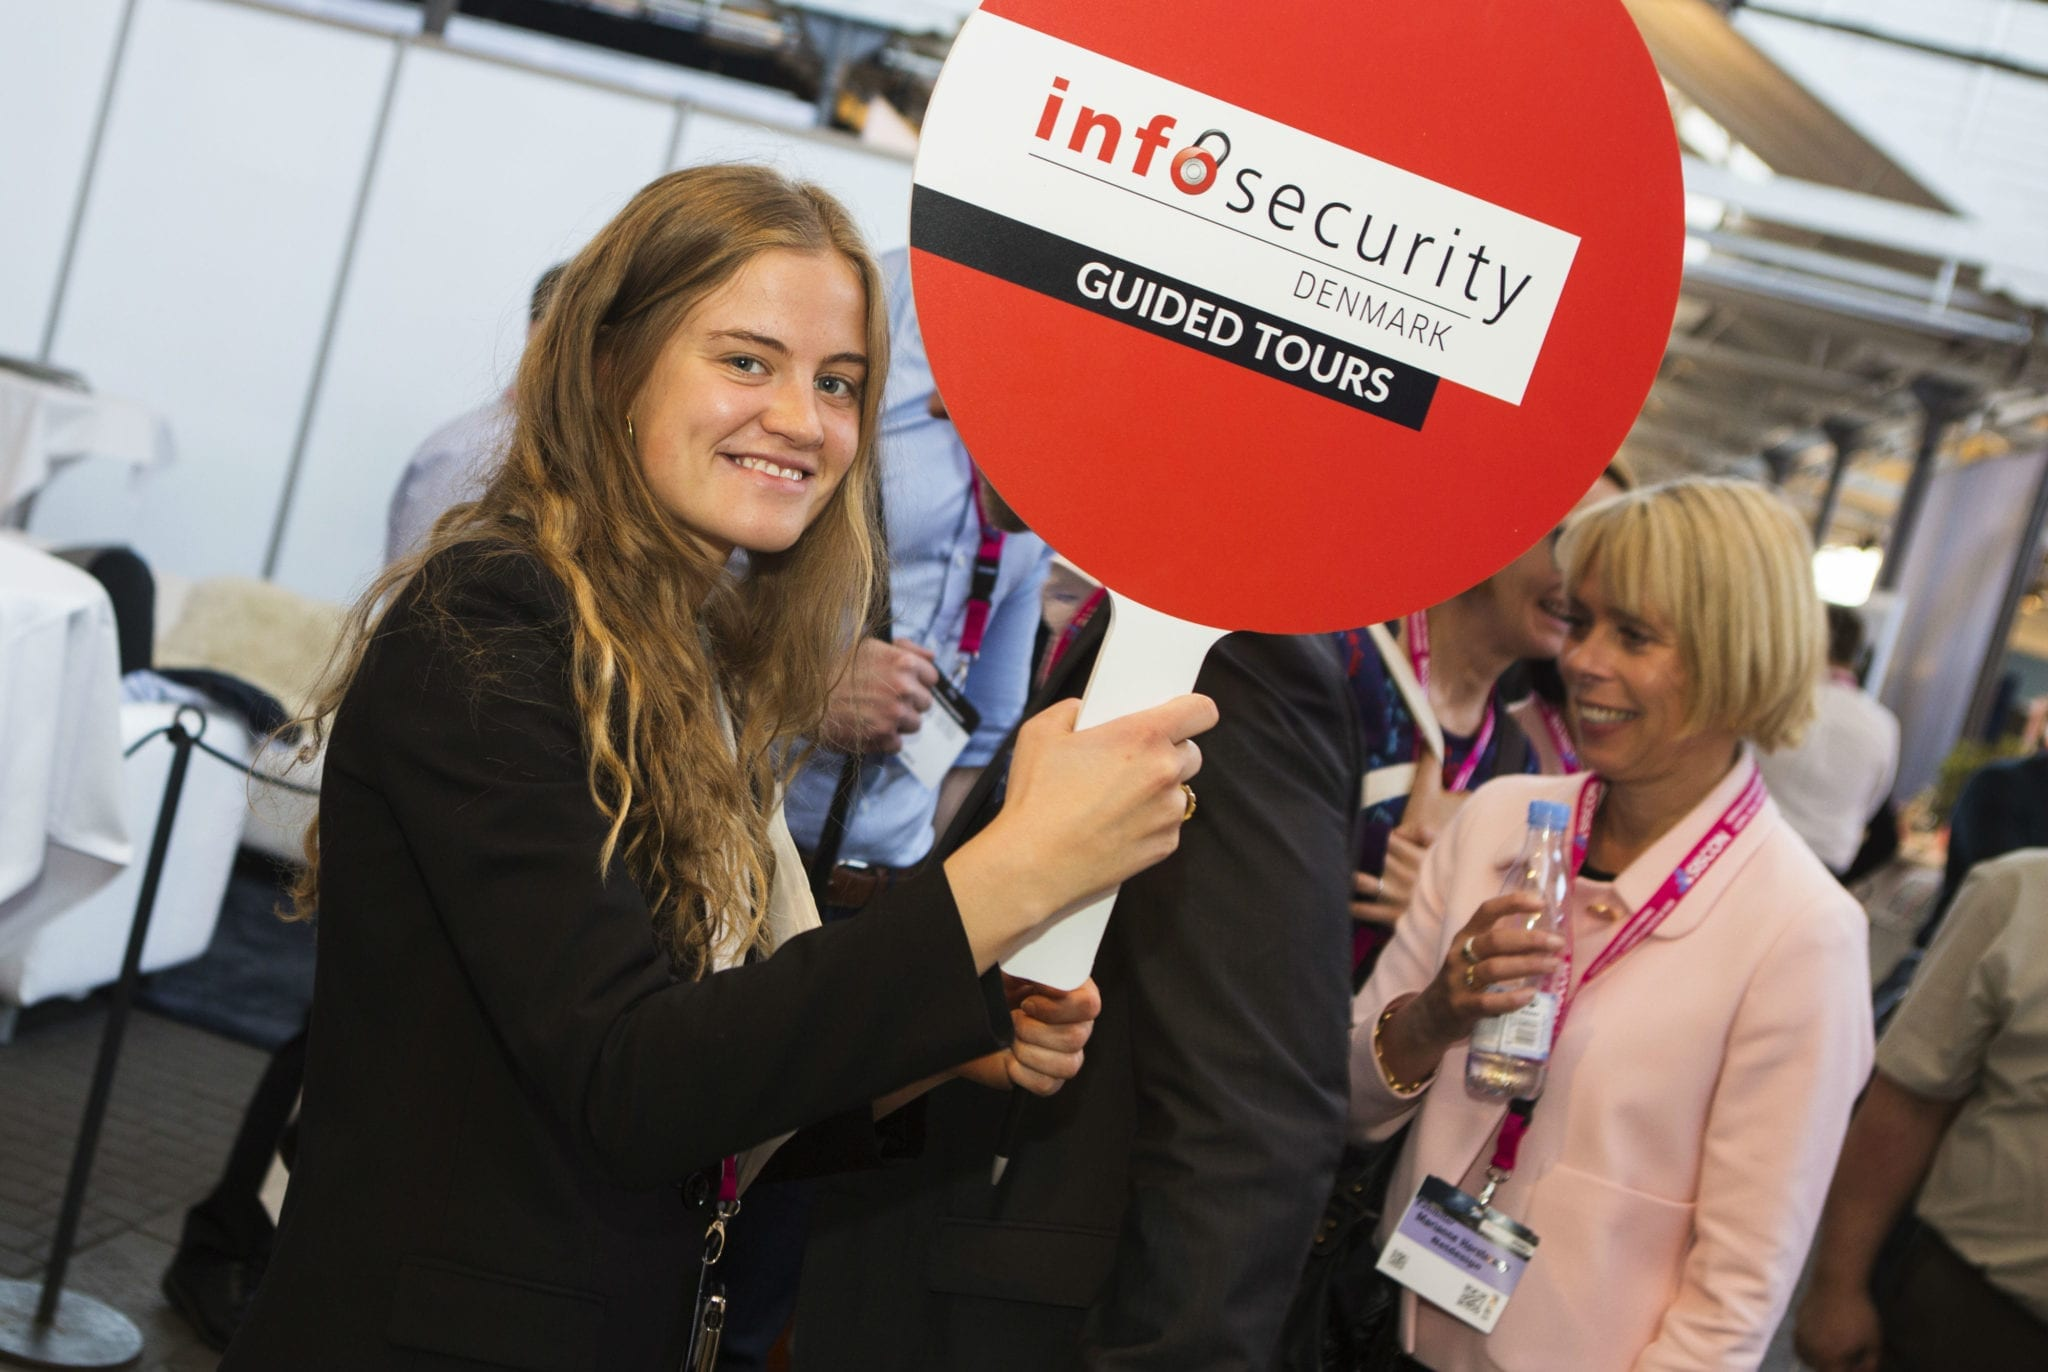 infosecurity Guided Tours